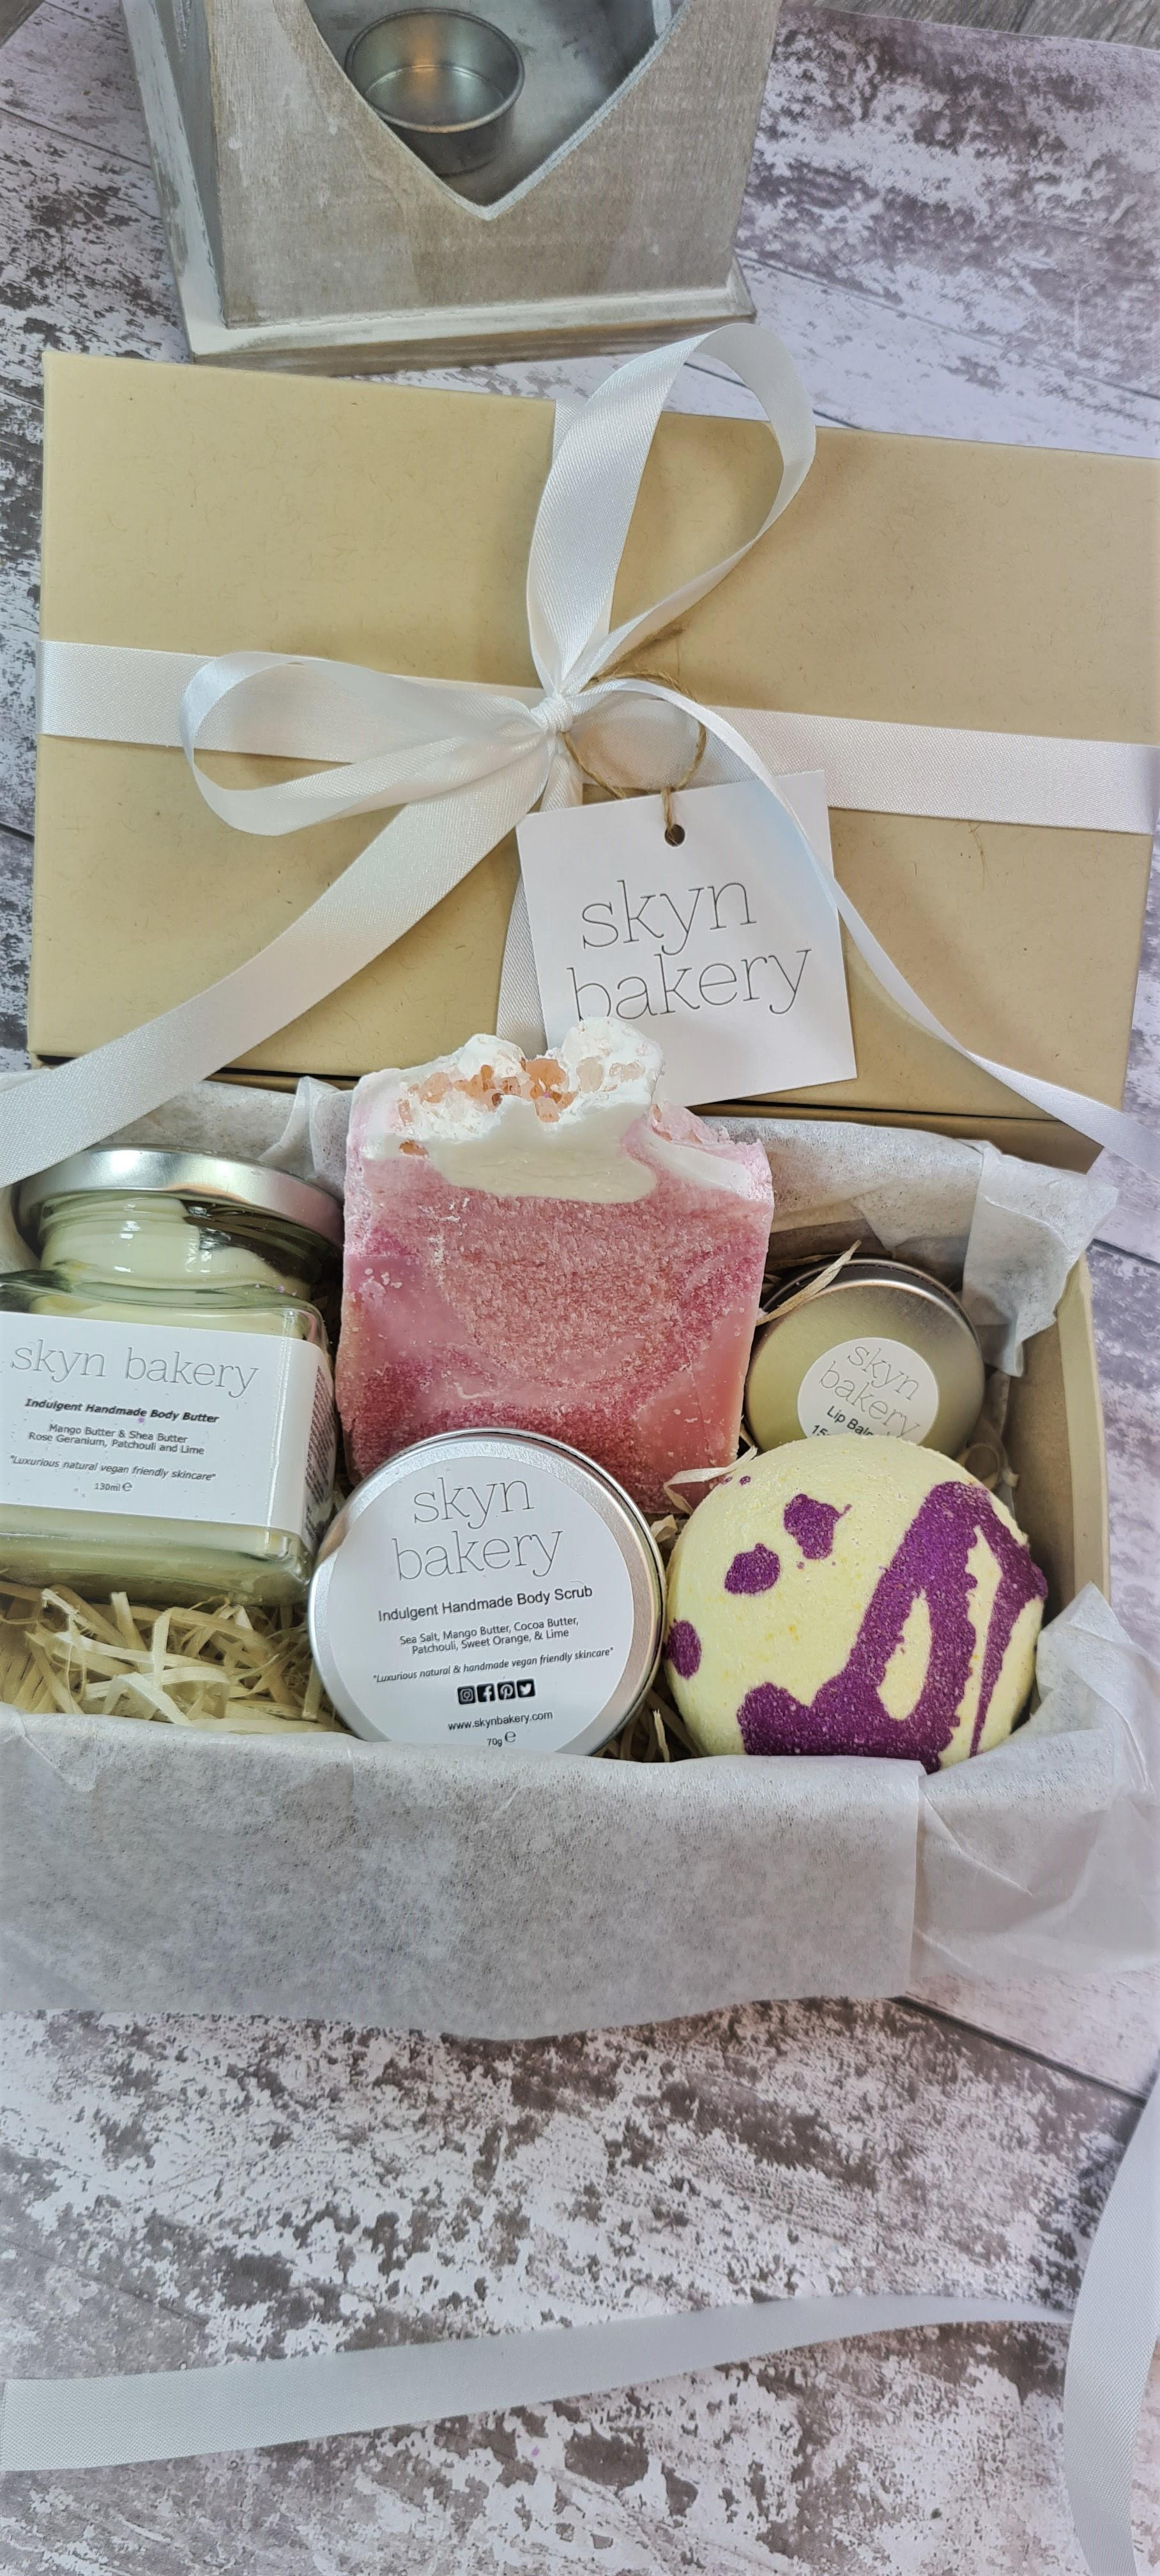 Gift Set Containing Body Scrub, Body Butter, Handmade Soap And Lip Balm in Plastic Free Packaging Closed